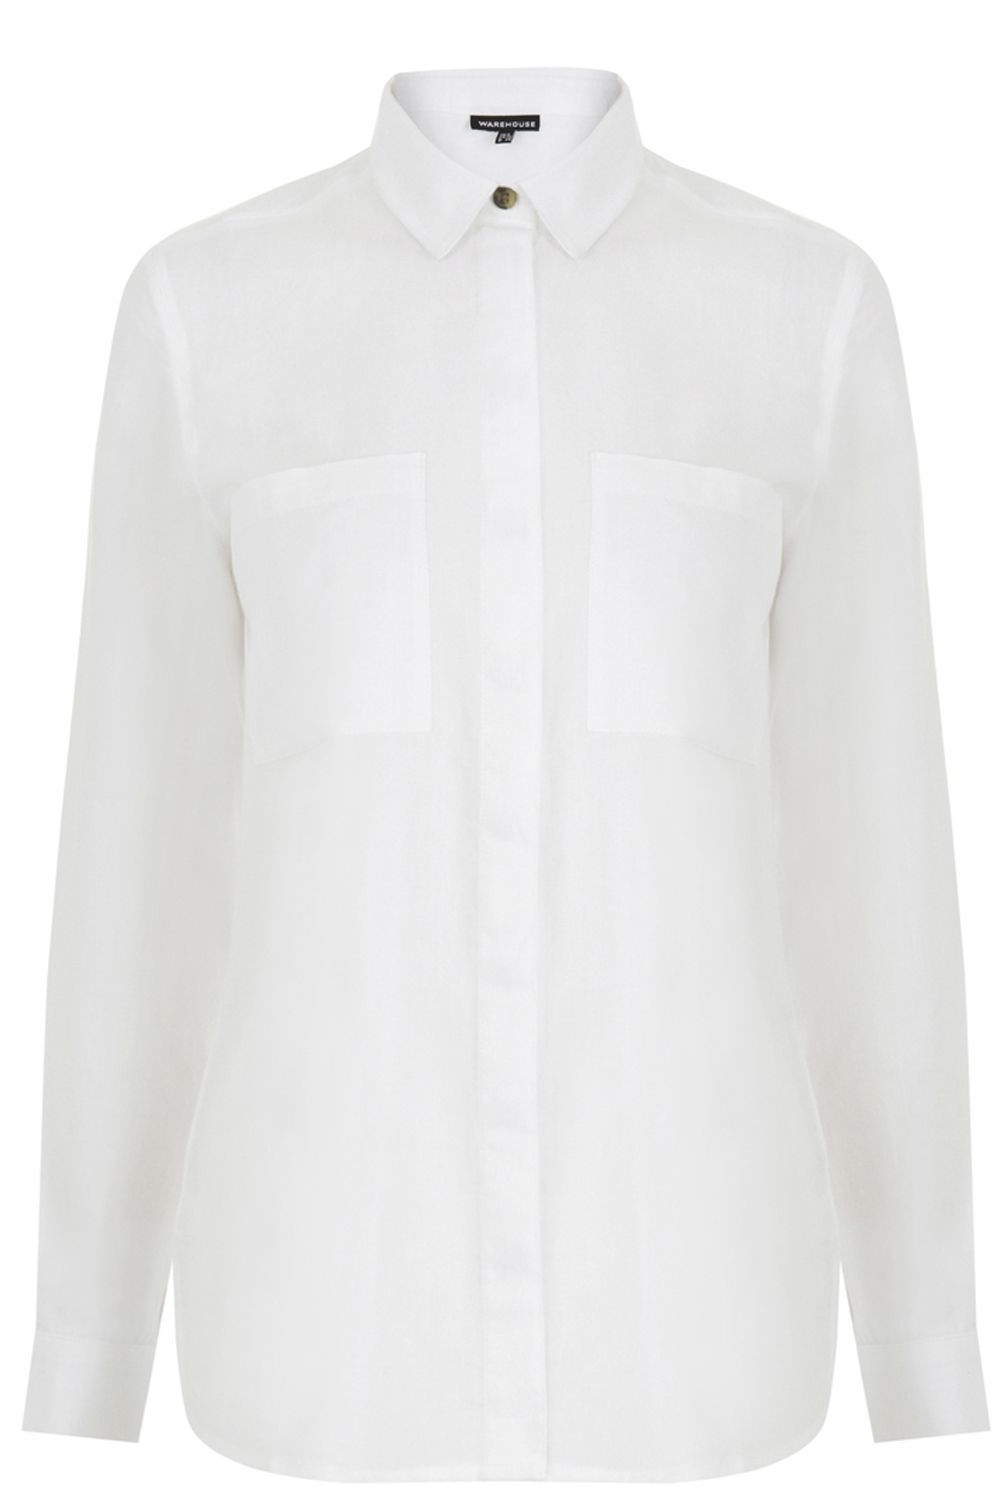 Relaxed Curved Hem Shirt, White - neckline: shirt collar/peter pan/zip with opening; pattern: plain; style: shirt; predominant colour: white; occasions: casual, creative work; length: standard; fibres: cotton - 100%; fit: straight cut; sleeve length: long sleeve; sleeve style: standard; texture group: cotton feel fabrics; bust detail: bulky details at bust; pattern type: fabric; season: s/s 2016; wardrobe: basic